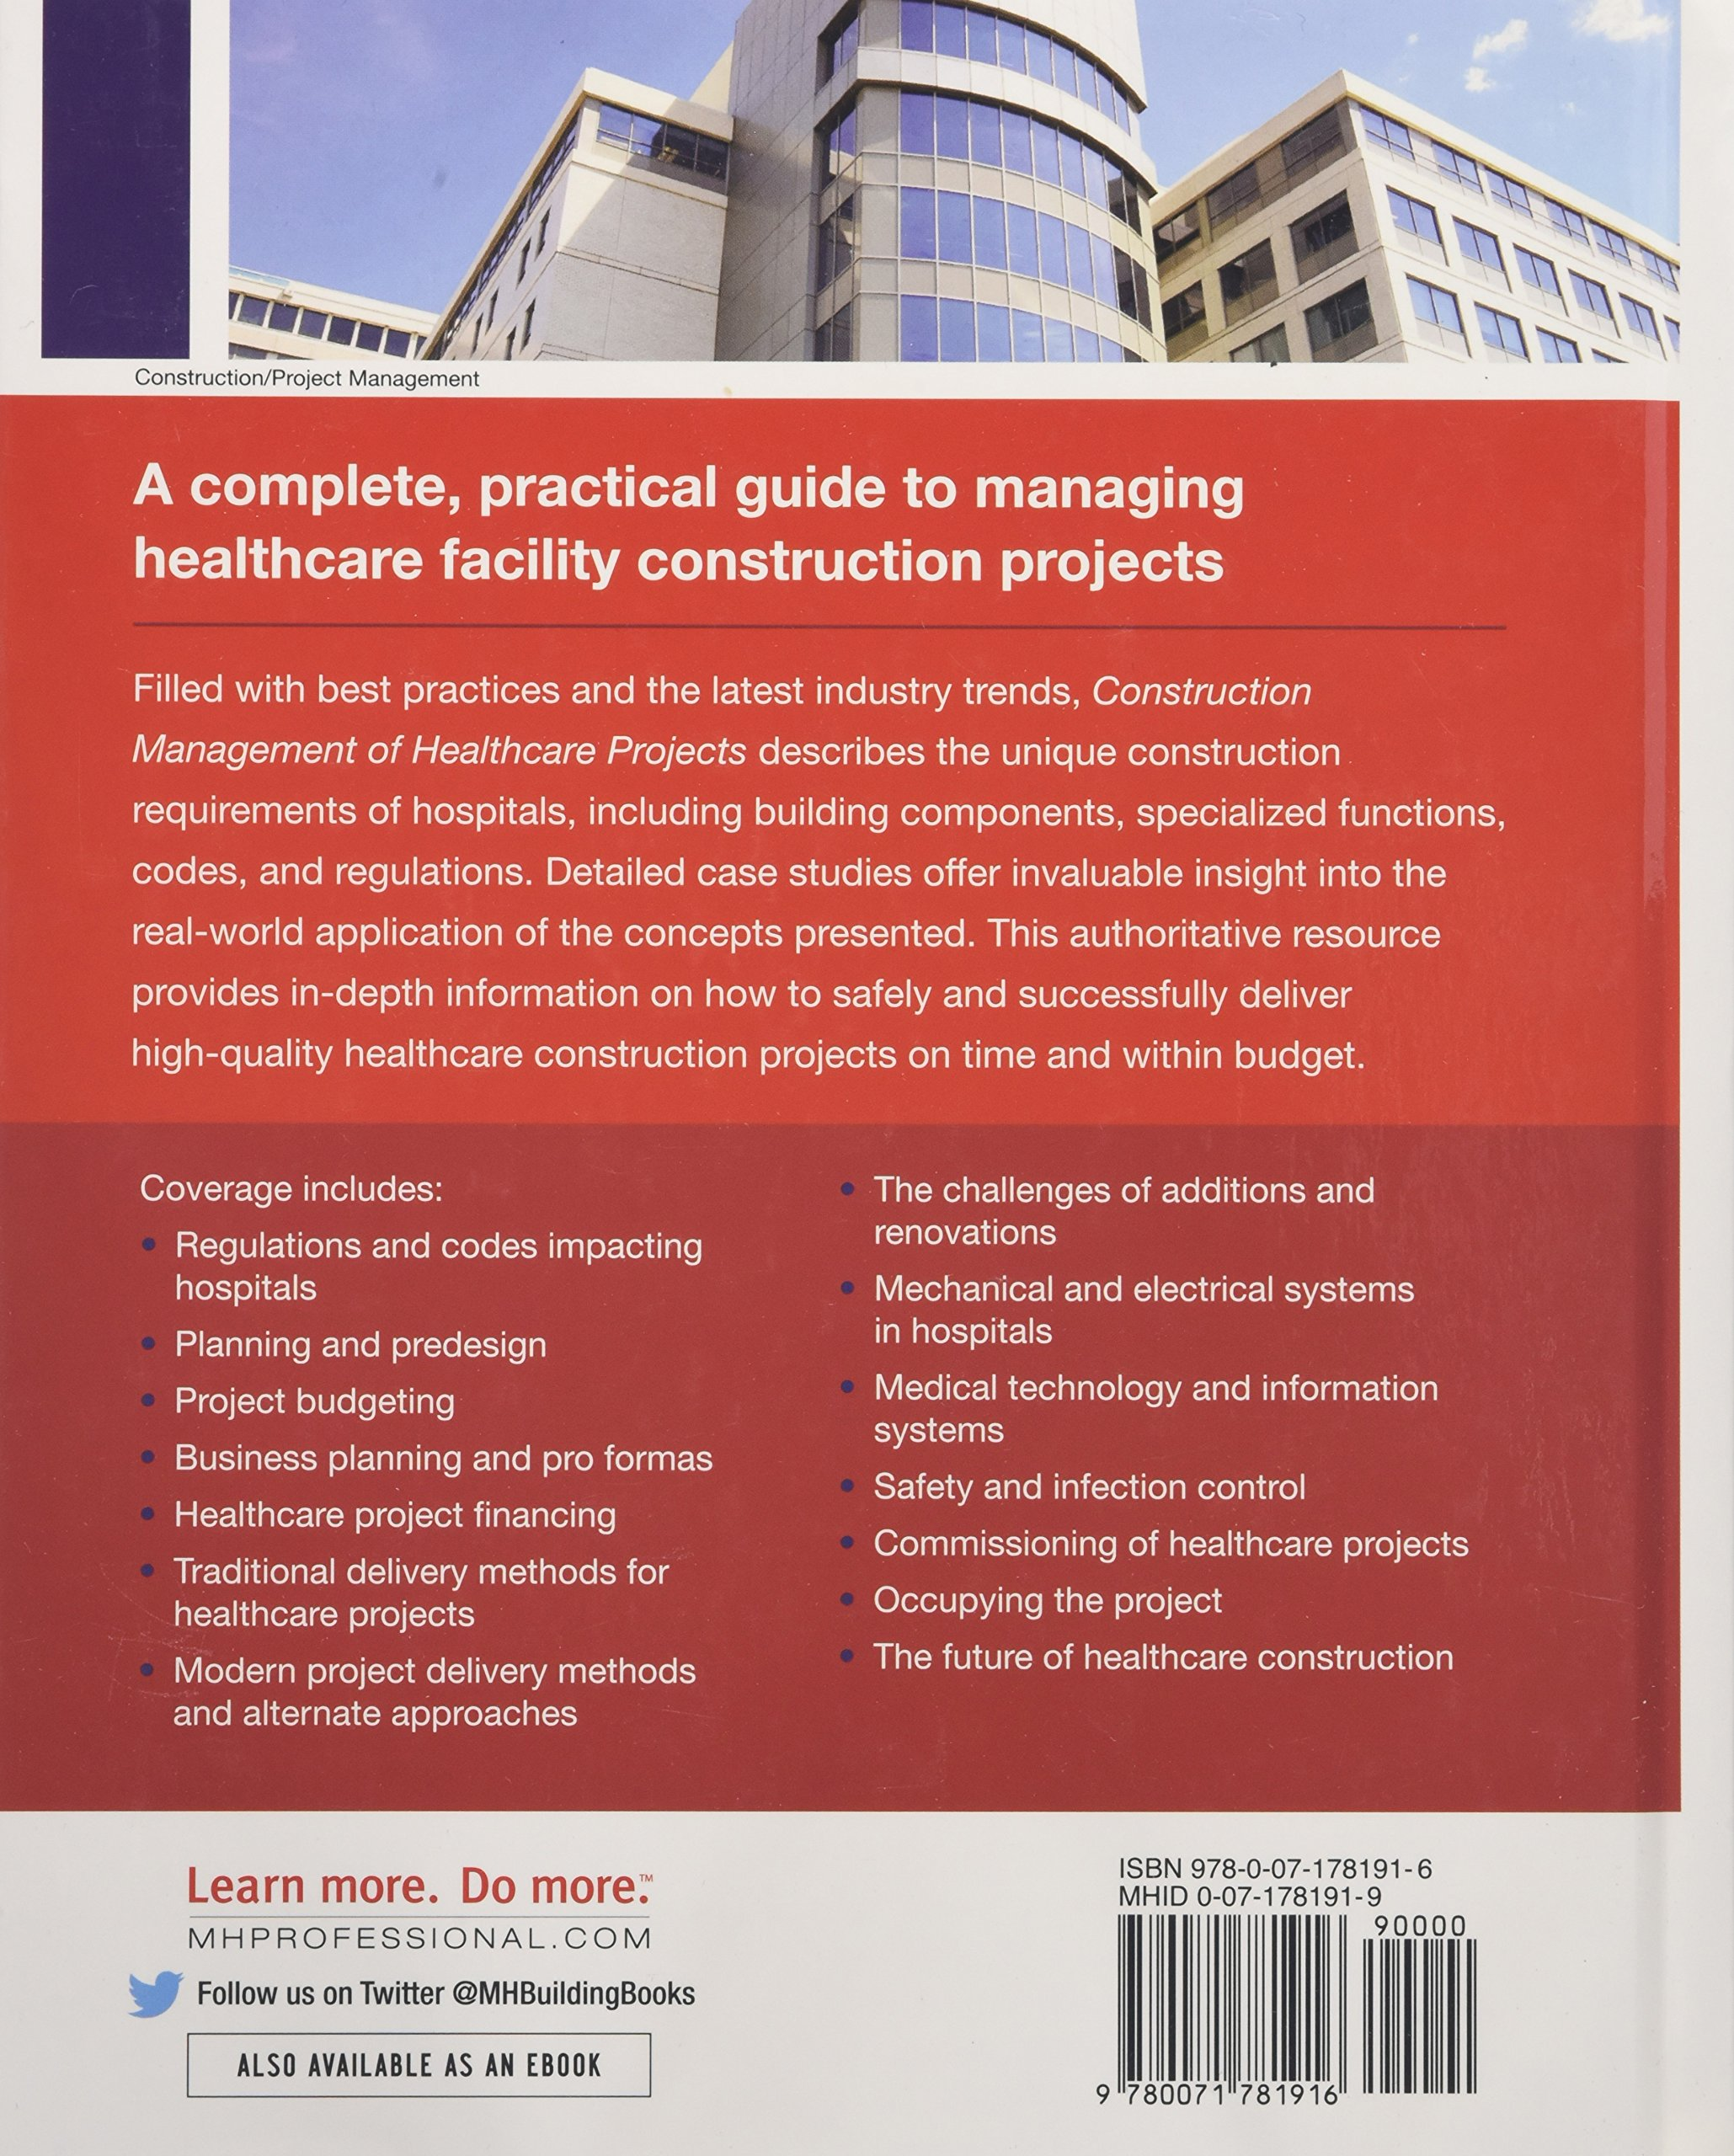 Construction Management of Healthcare Projects